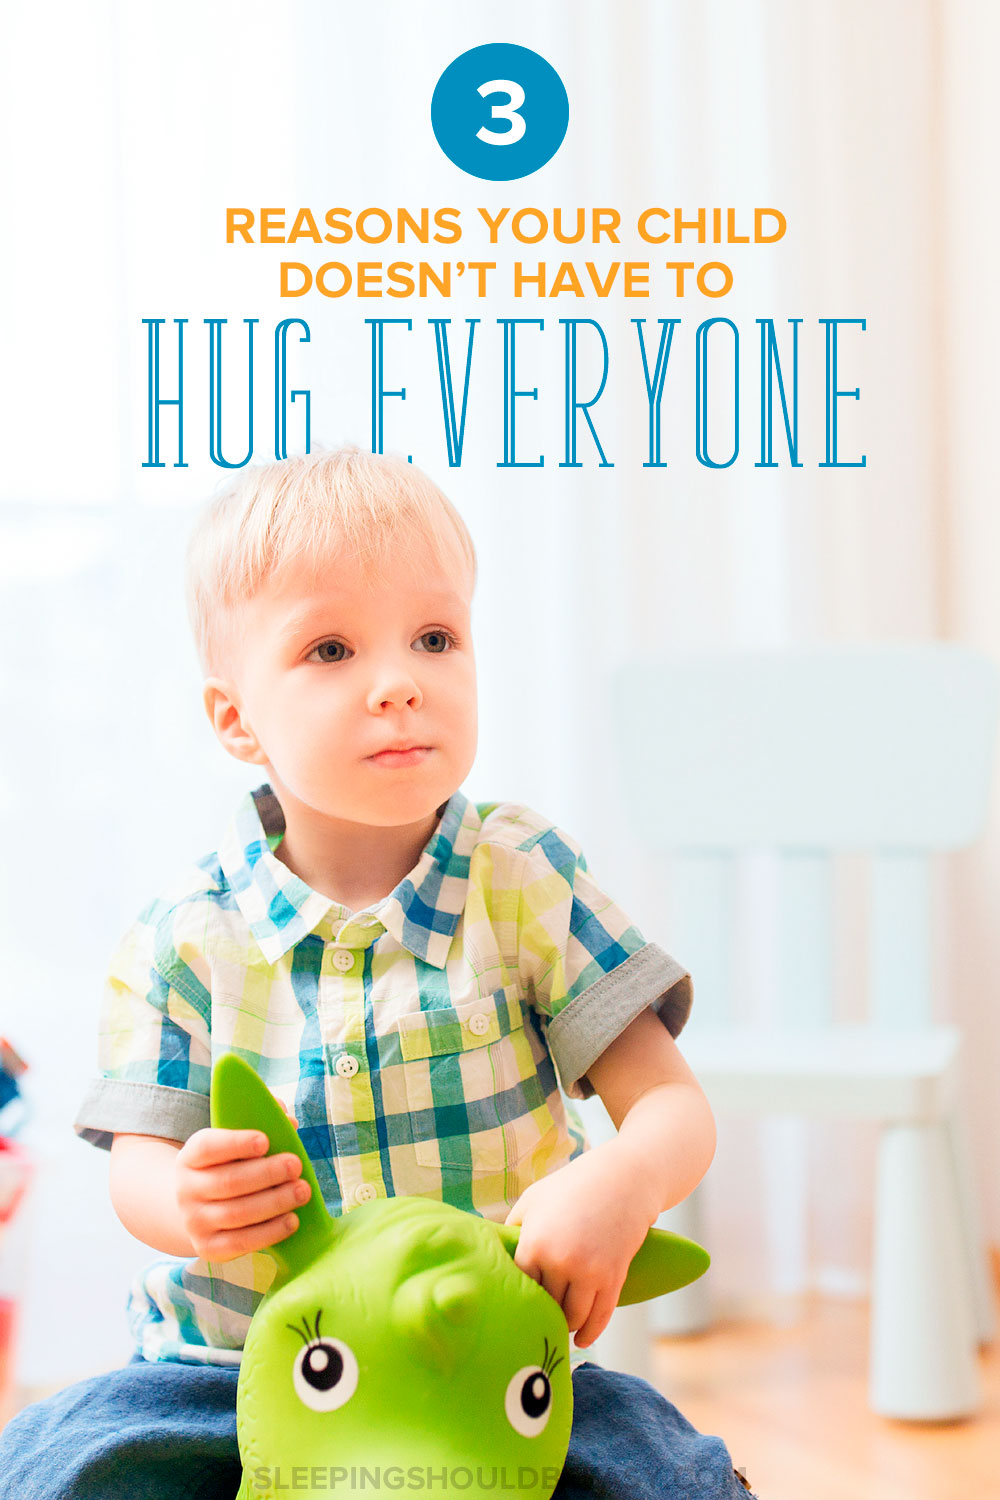 It might seem polite to have kids hug others, even those they don't know, but here are 3 reasons your child doesn't have to hug everyone.